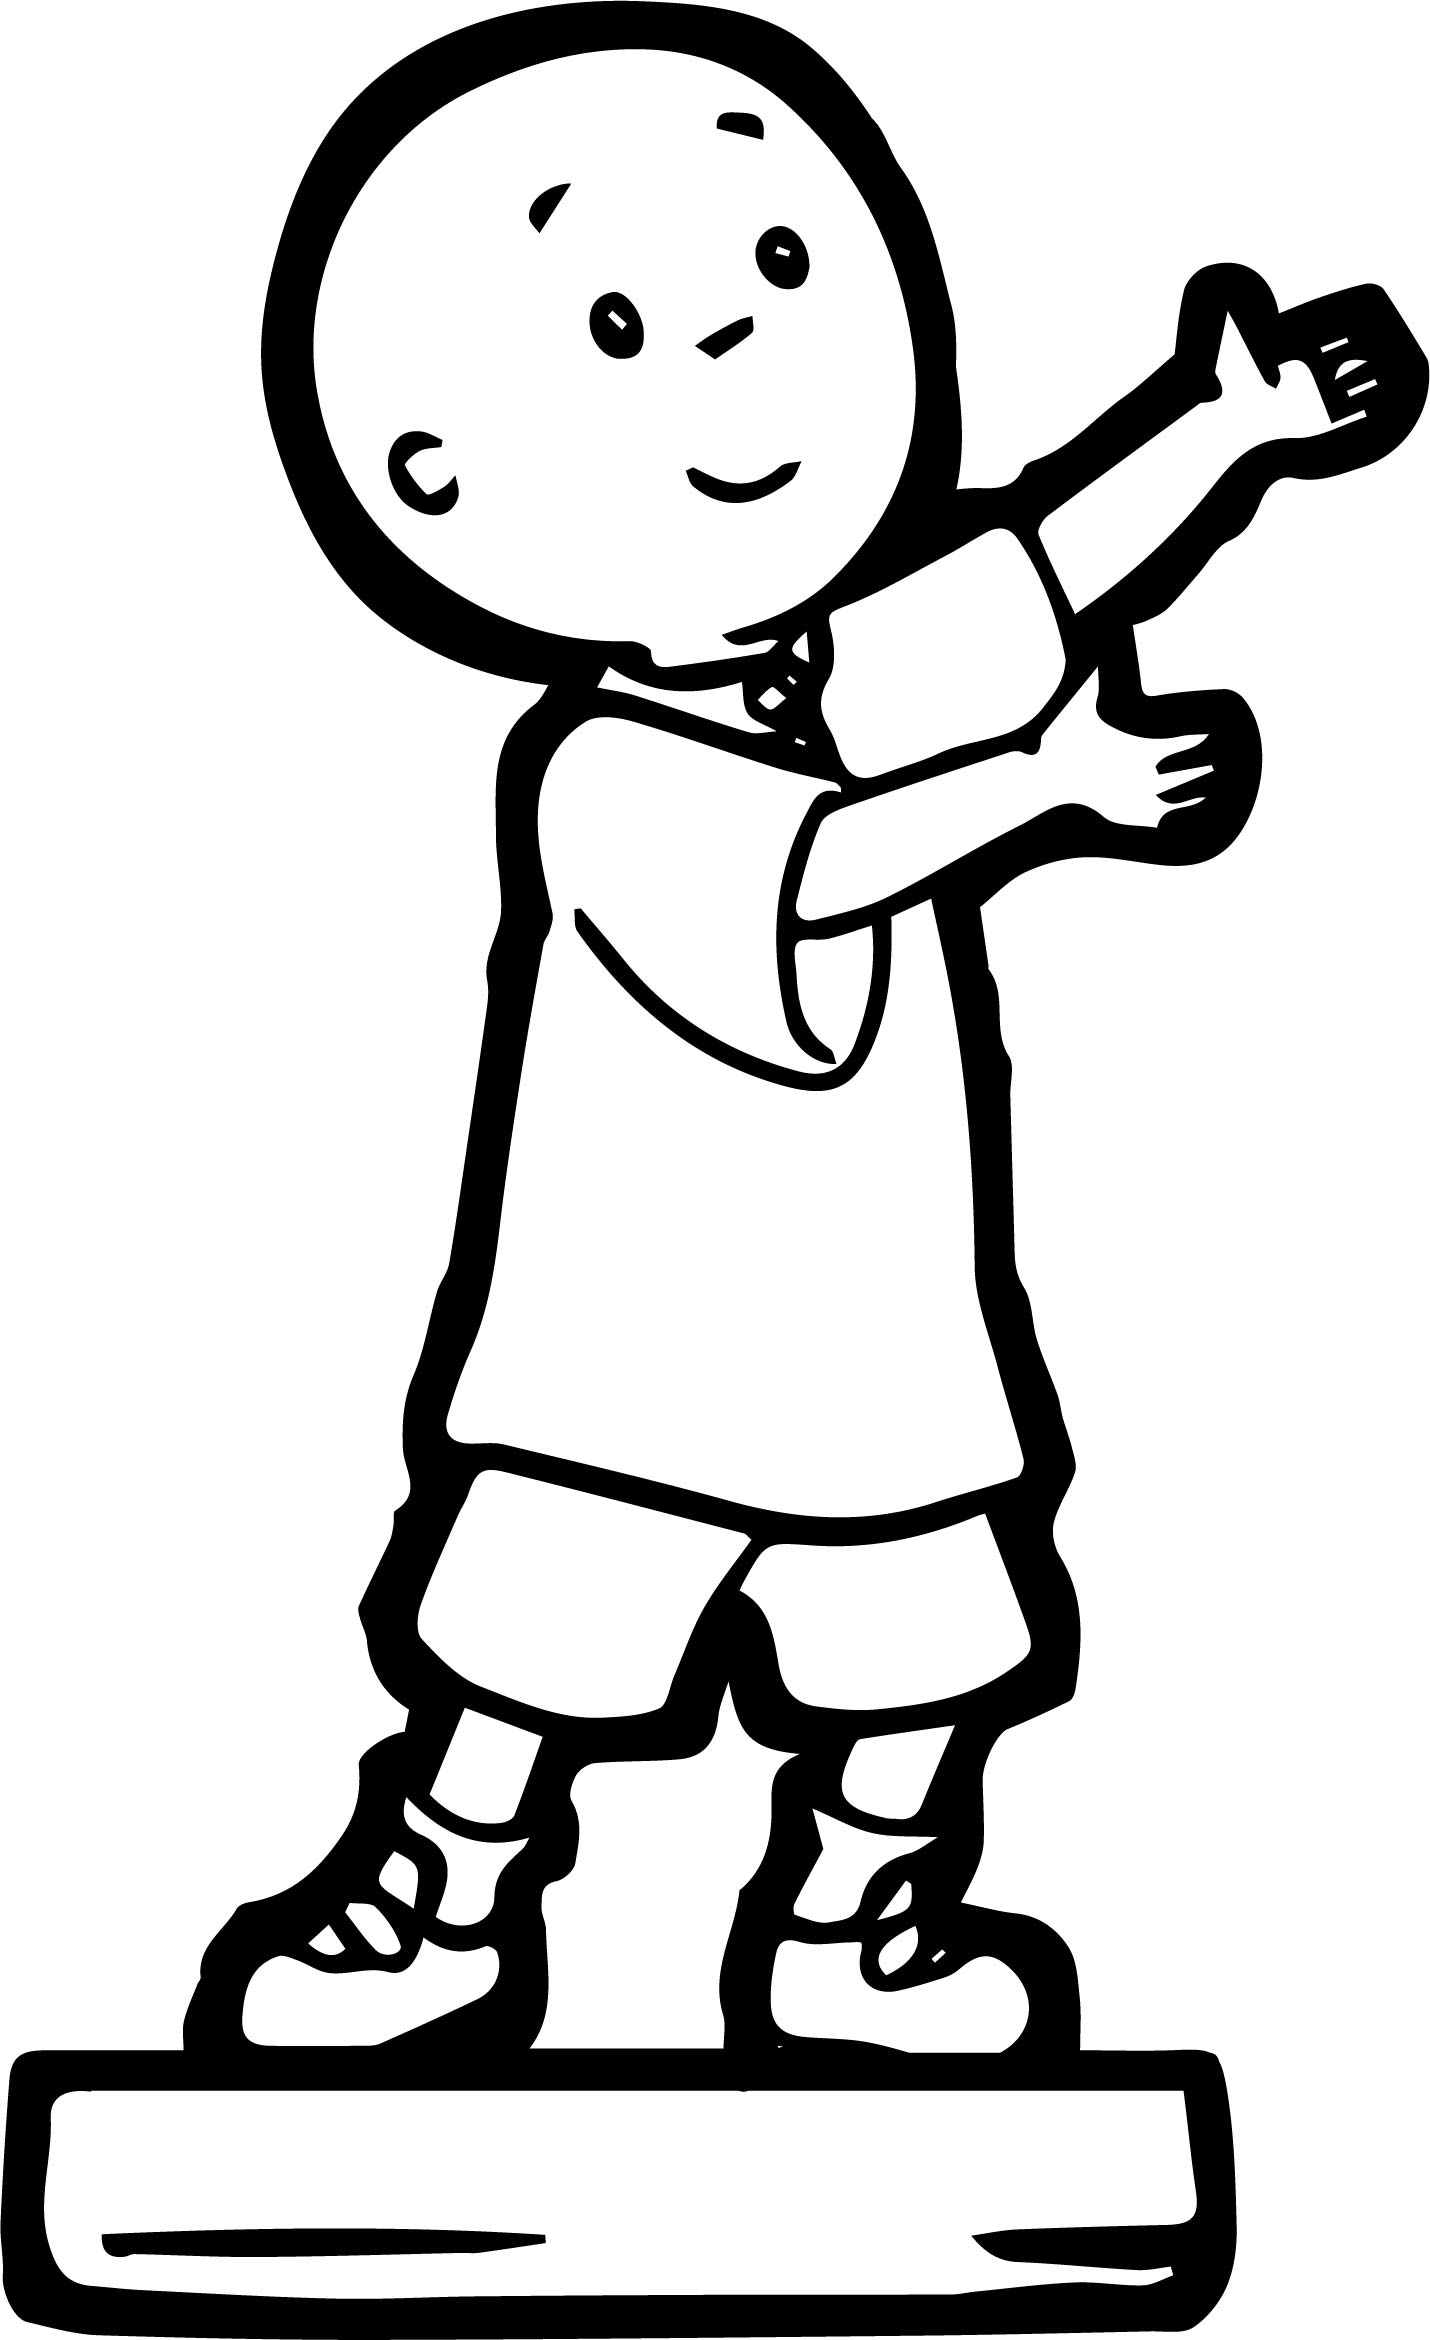 Caillou Statue Coloring Page